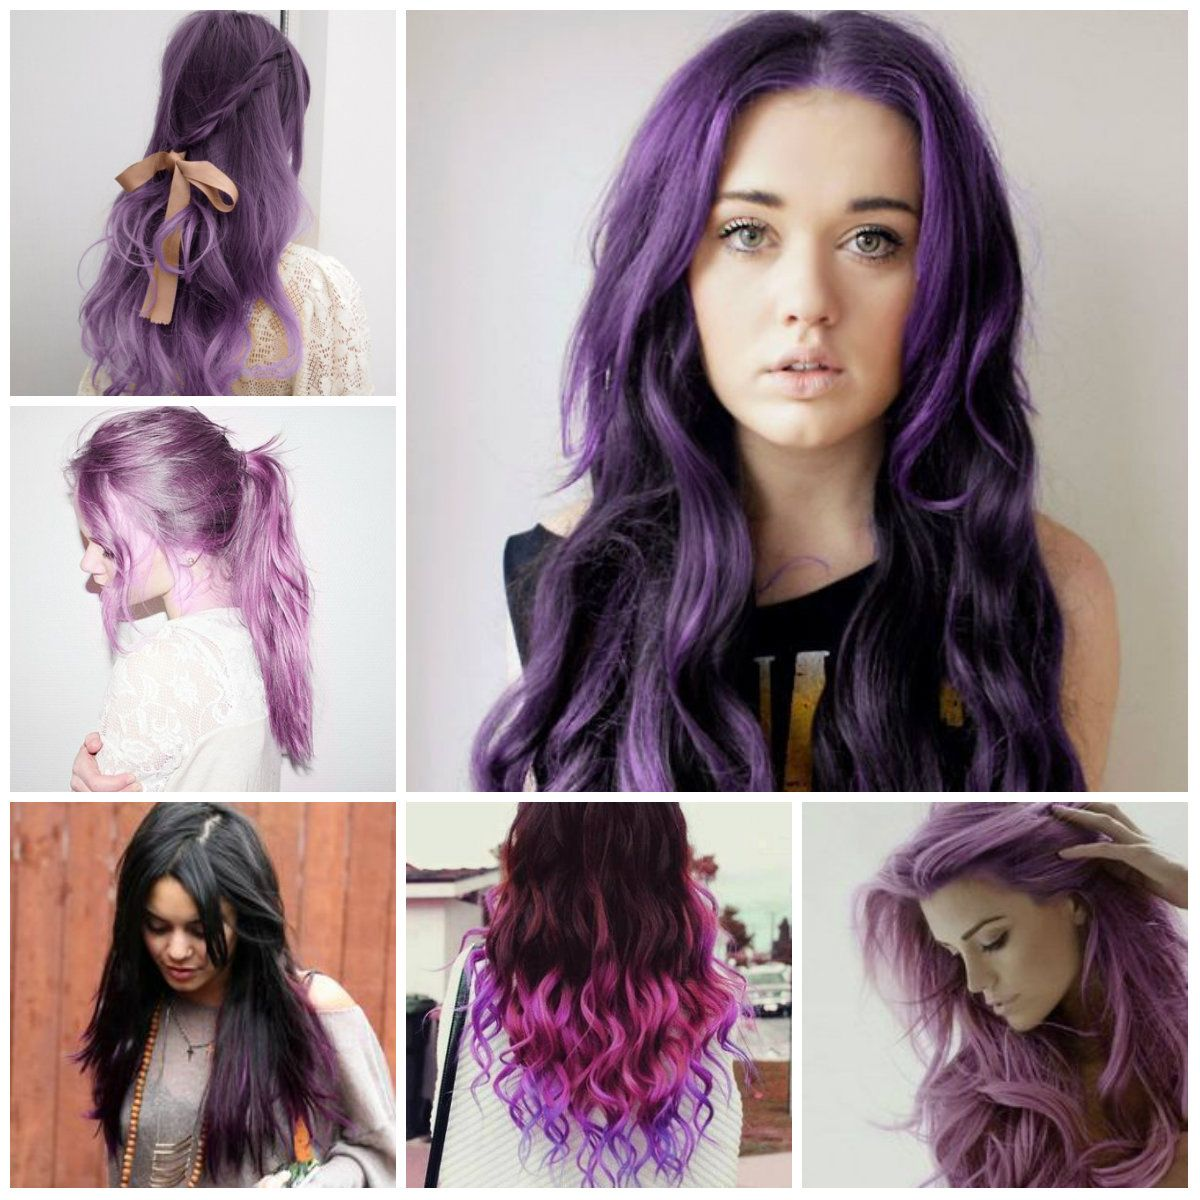 latest hair color ideas 2016 | trendy hairstyles 2015 / 2016 for